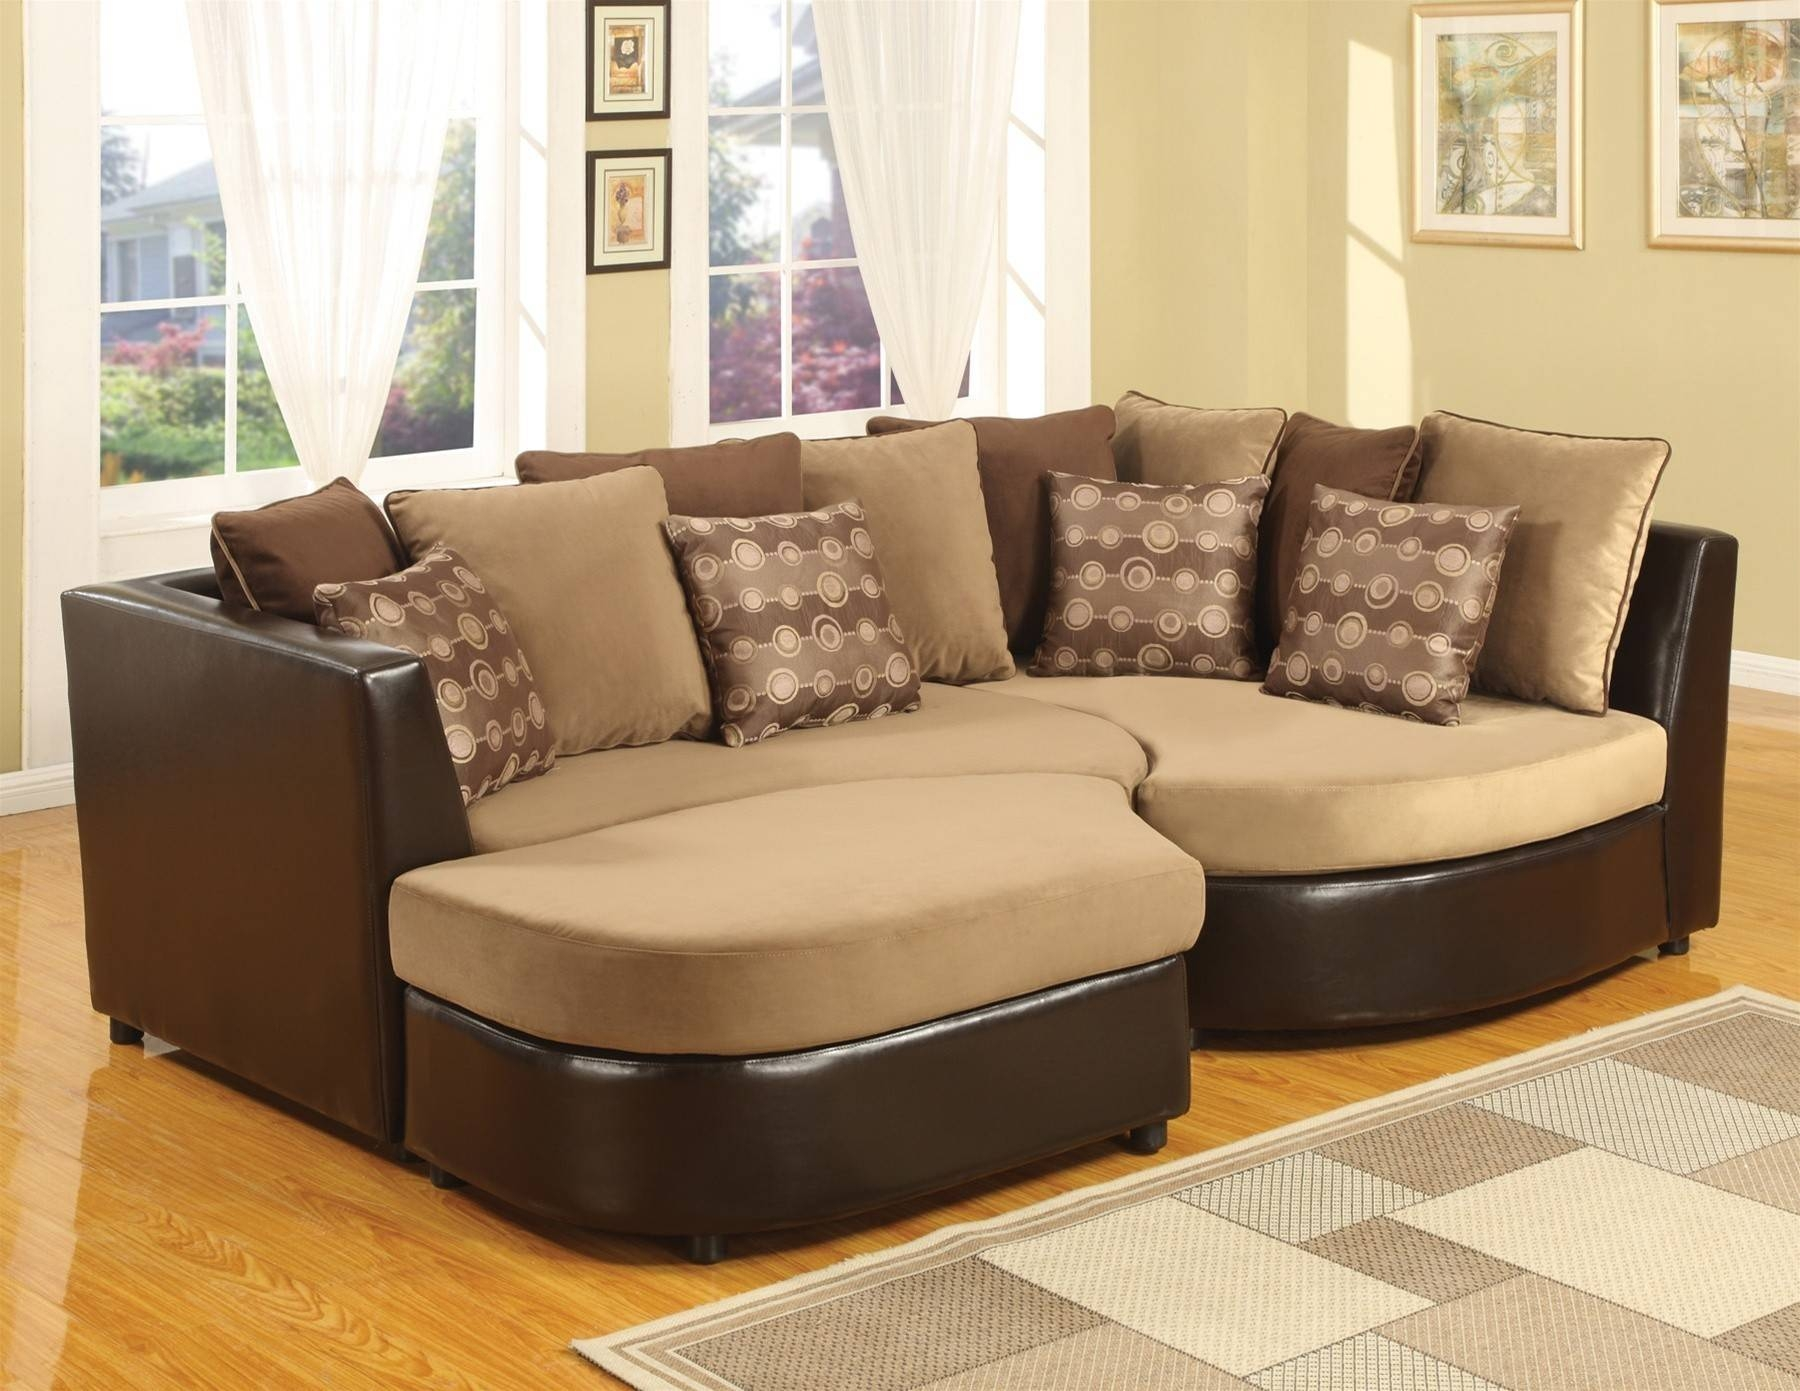 Sofas Center : Oversized Double Sofa Chair And For Staging for Large Sofa Chairs (Image 22 of 30)